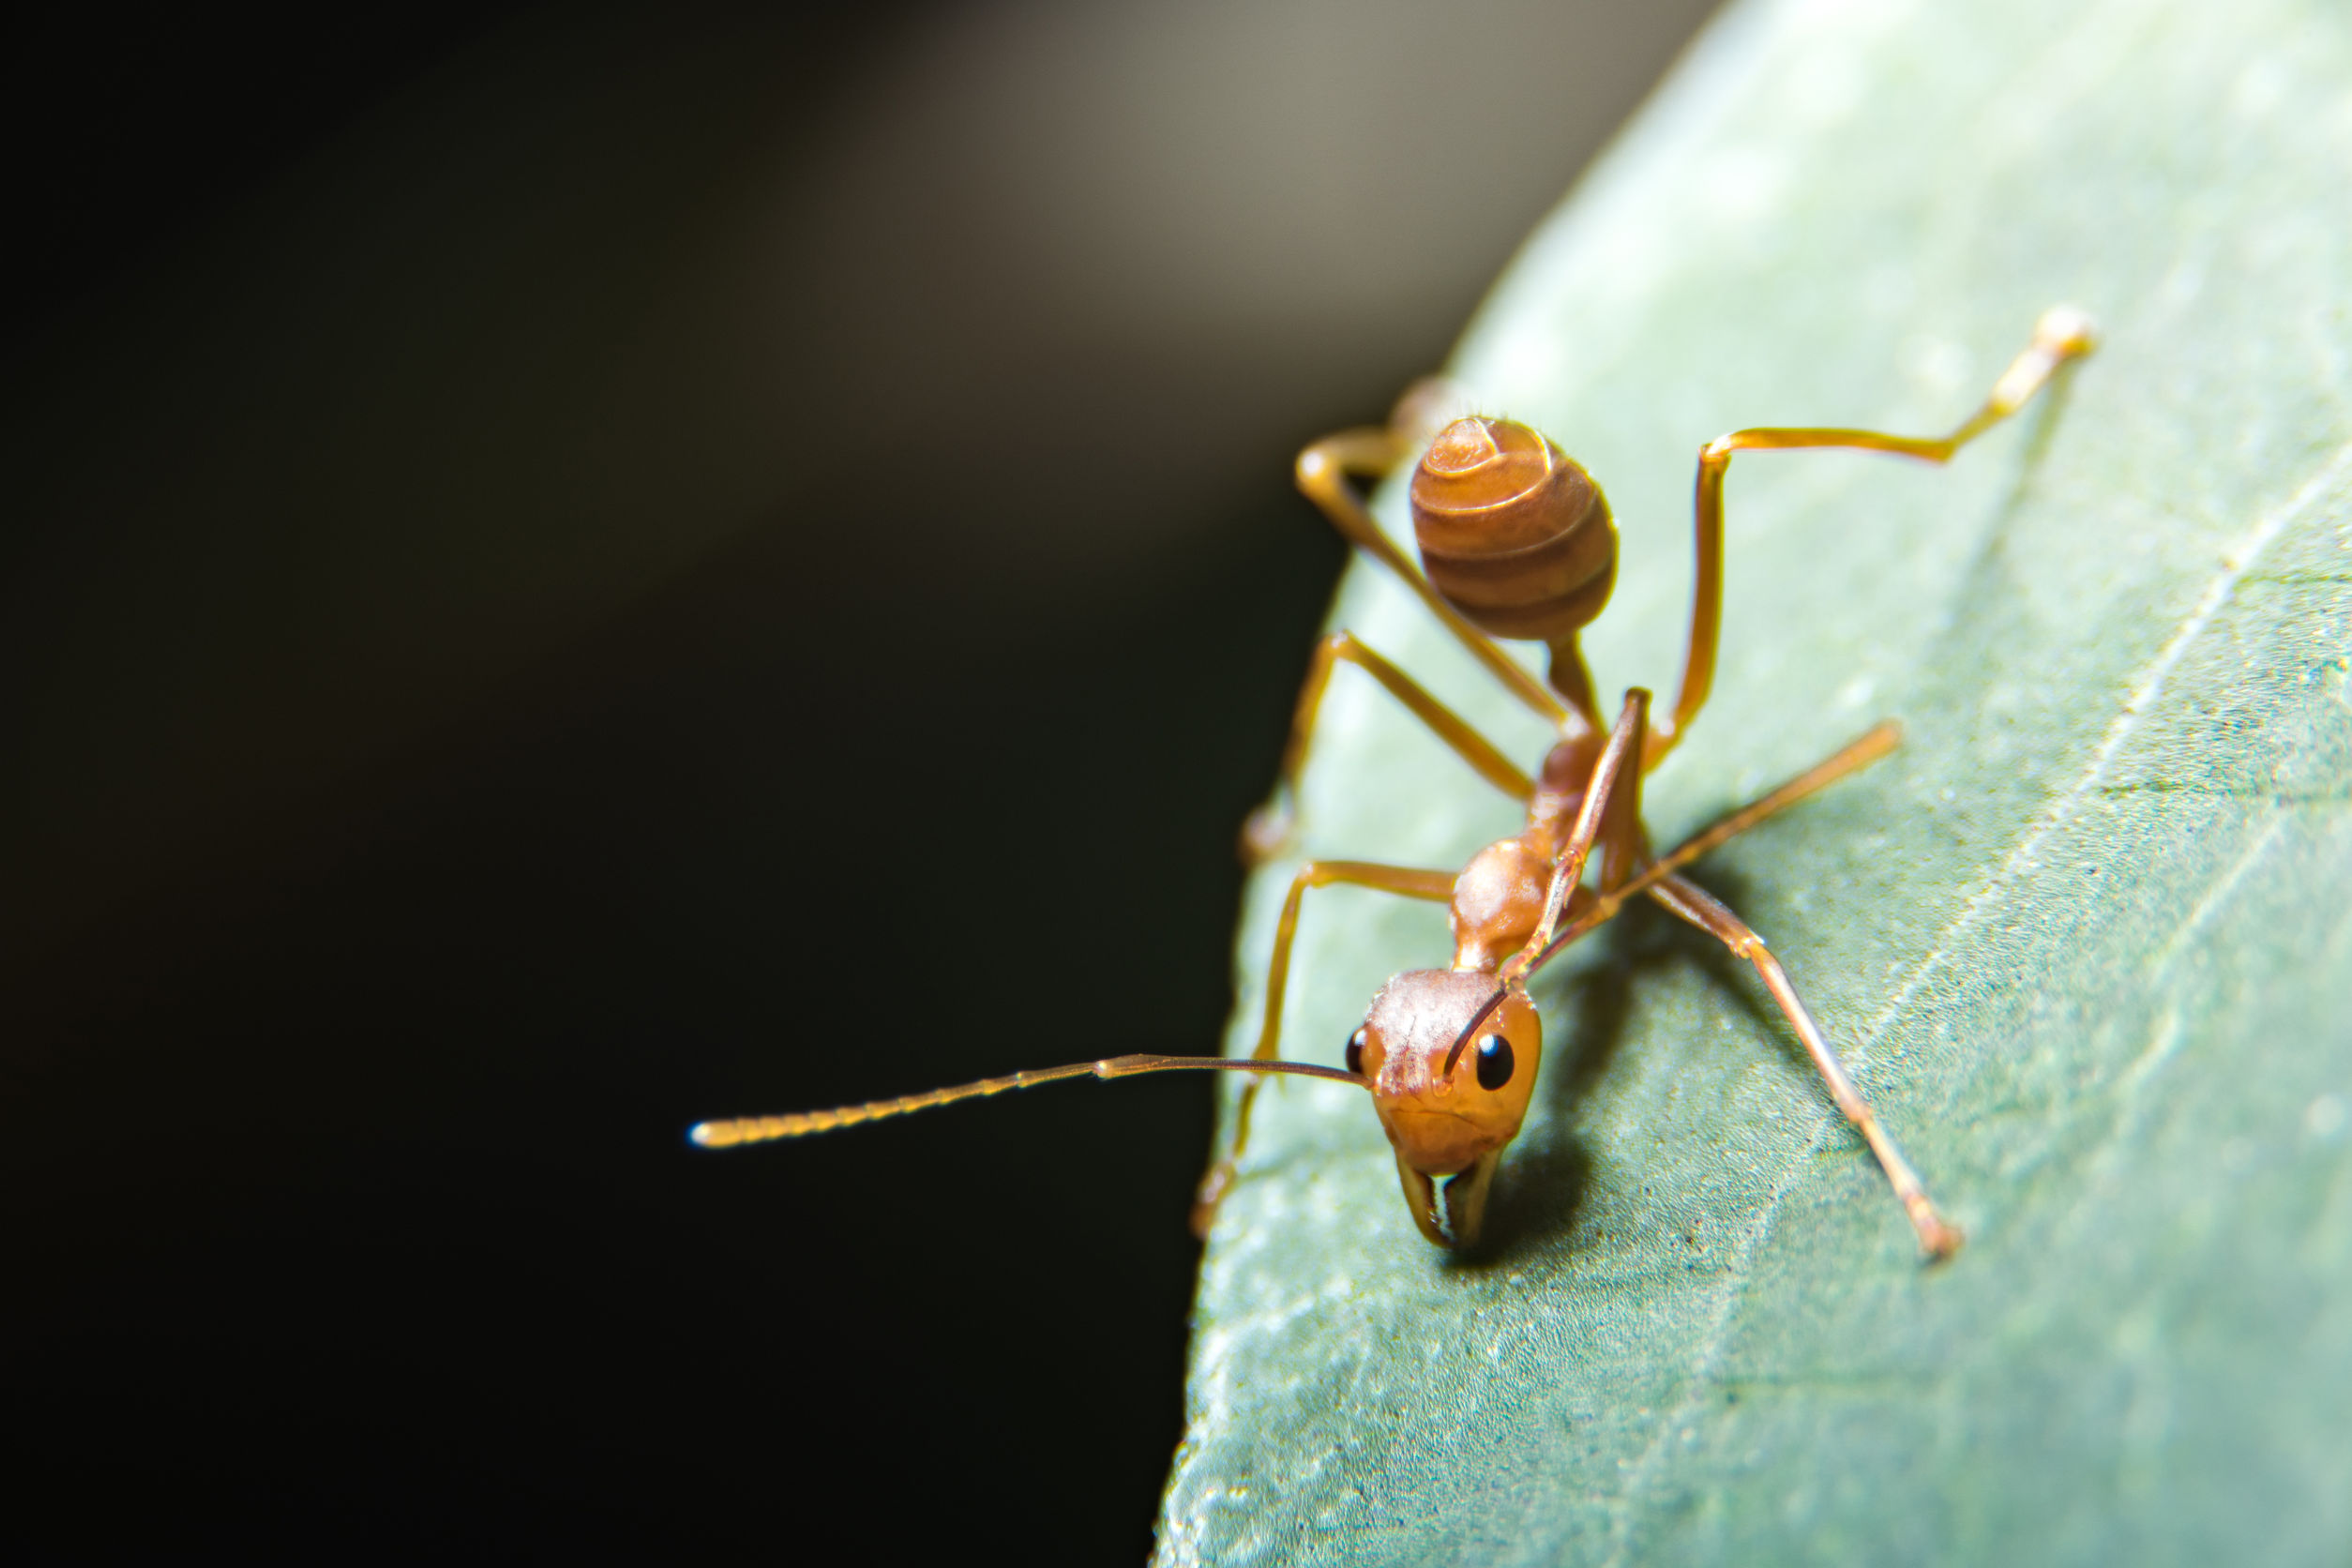 Fire Ant Service In Cypress